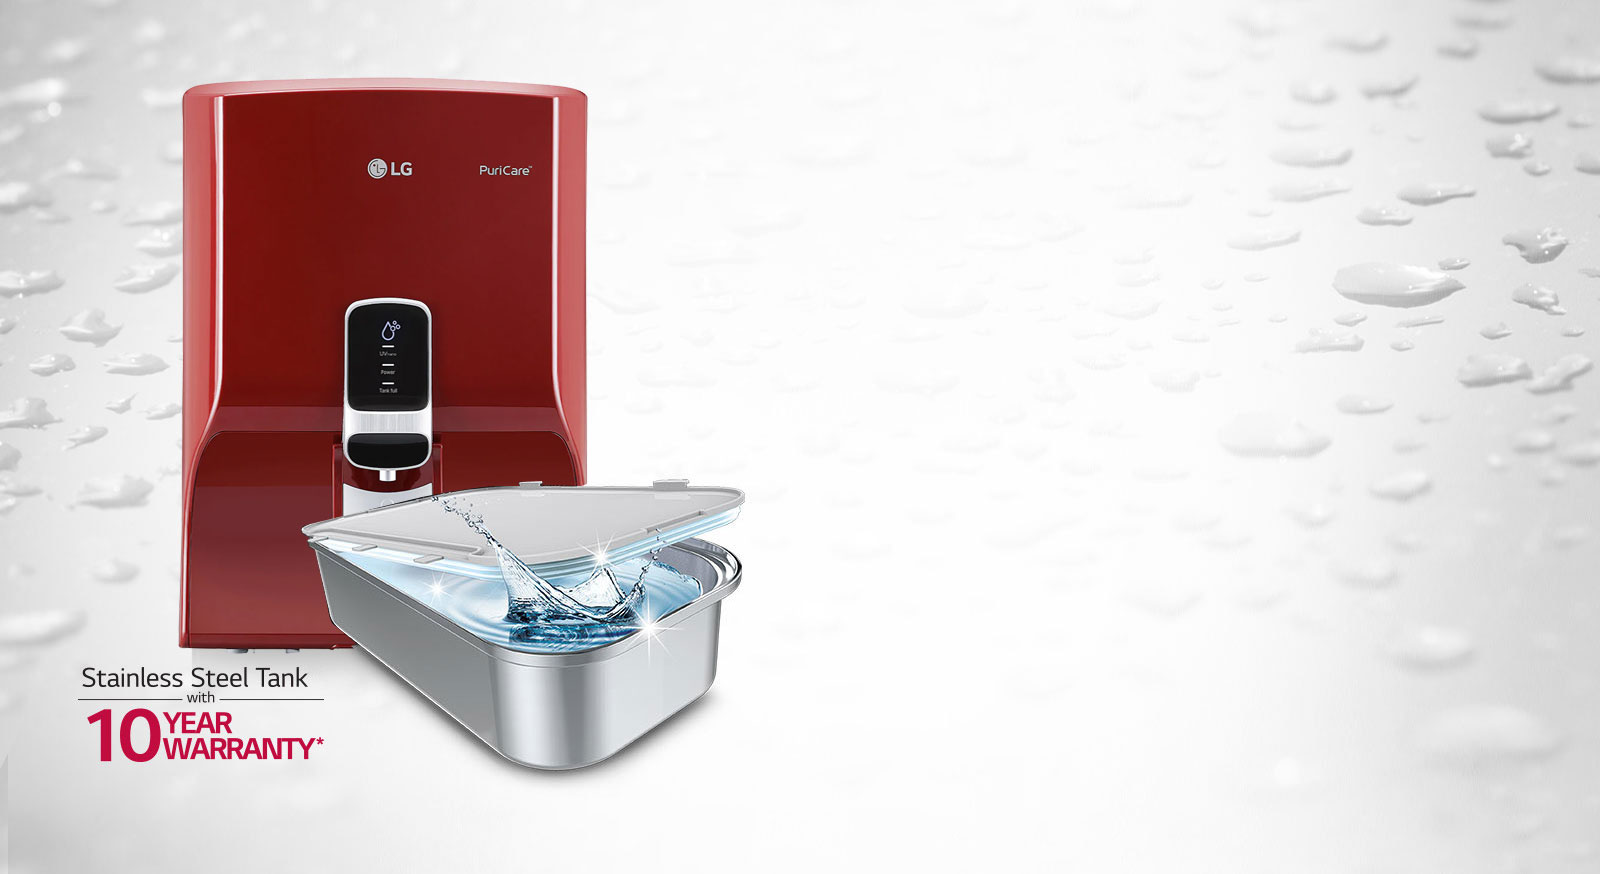 LG Water Purifier With Dual Protection Stainless Steel Water Tank